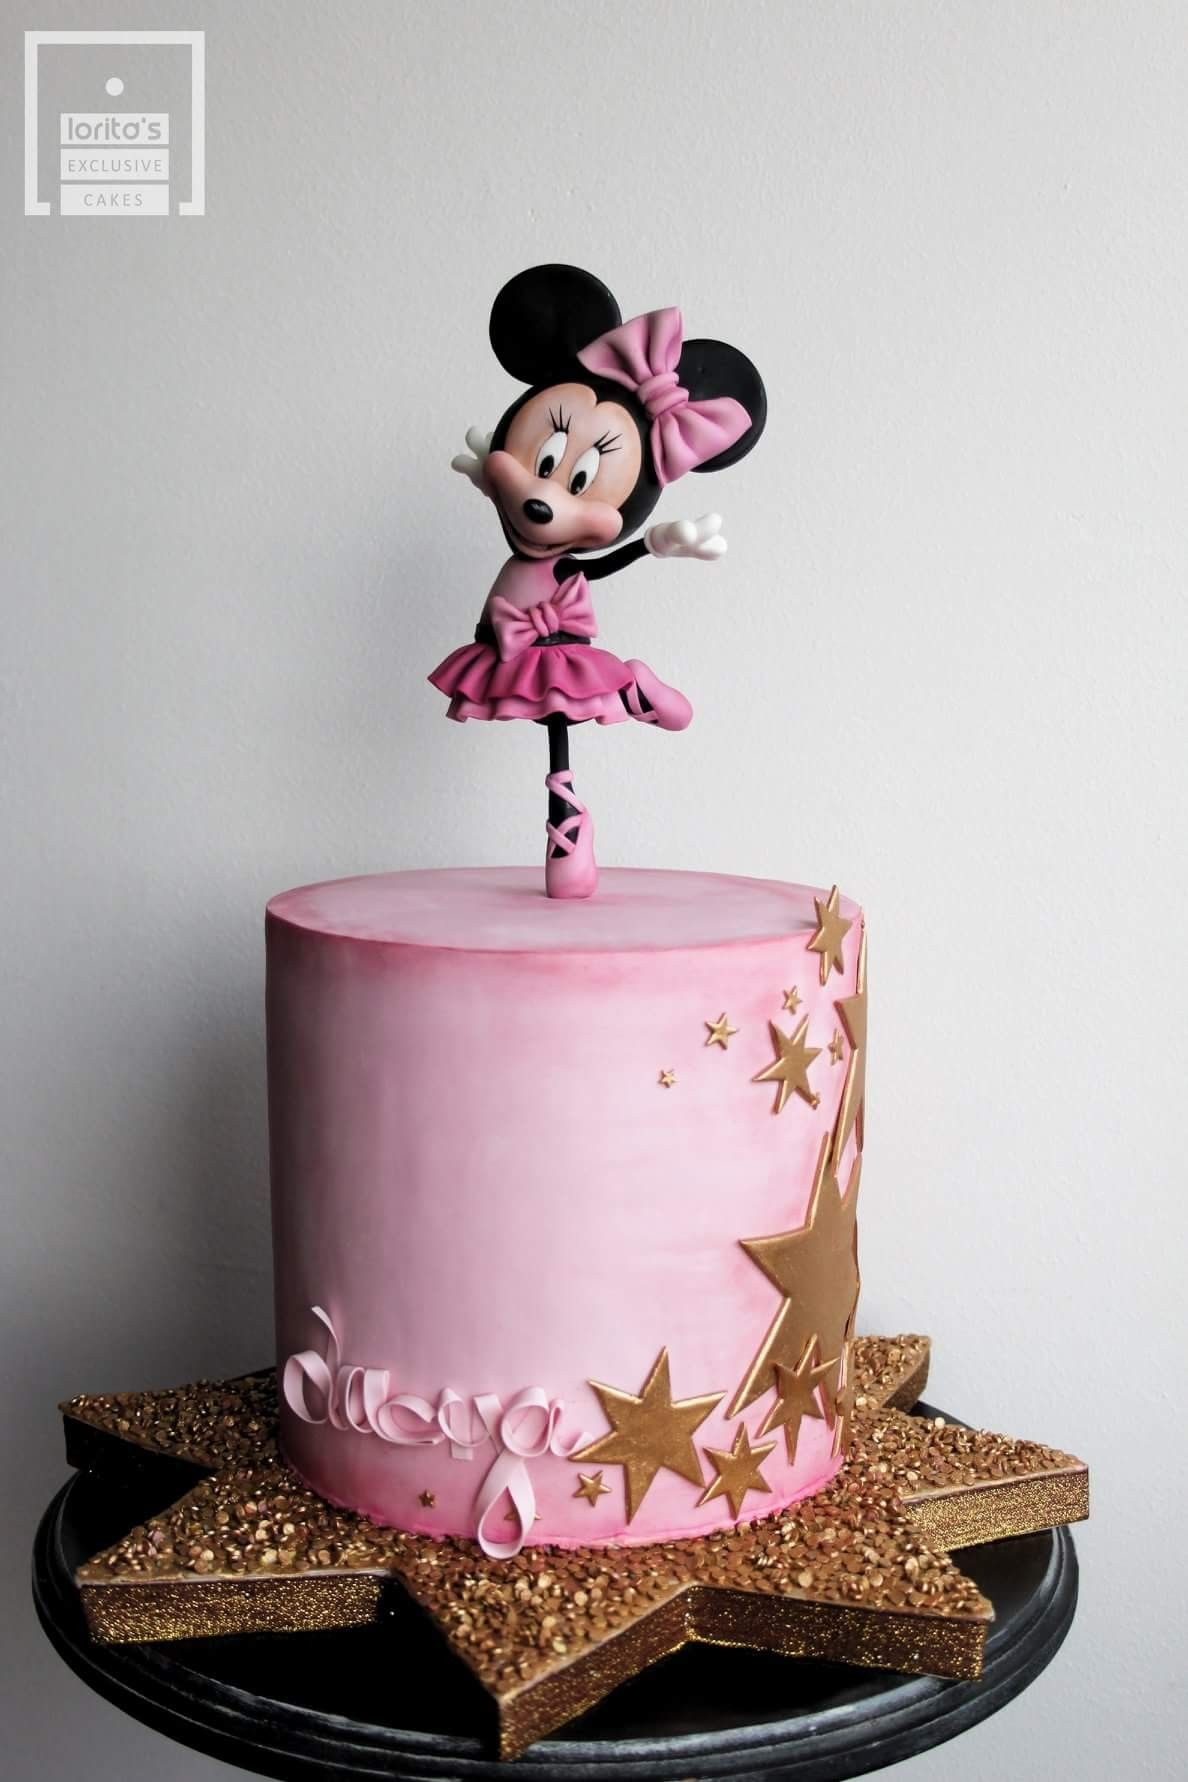 Swell For Adriana 1St Bday With Images Minnie Mouse Birthday Cakes Personalised Birthday Cards Petedlily Jamesorg